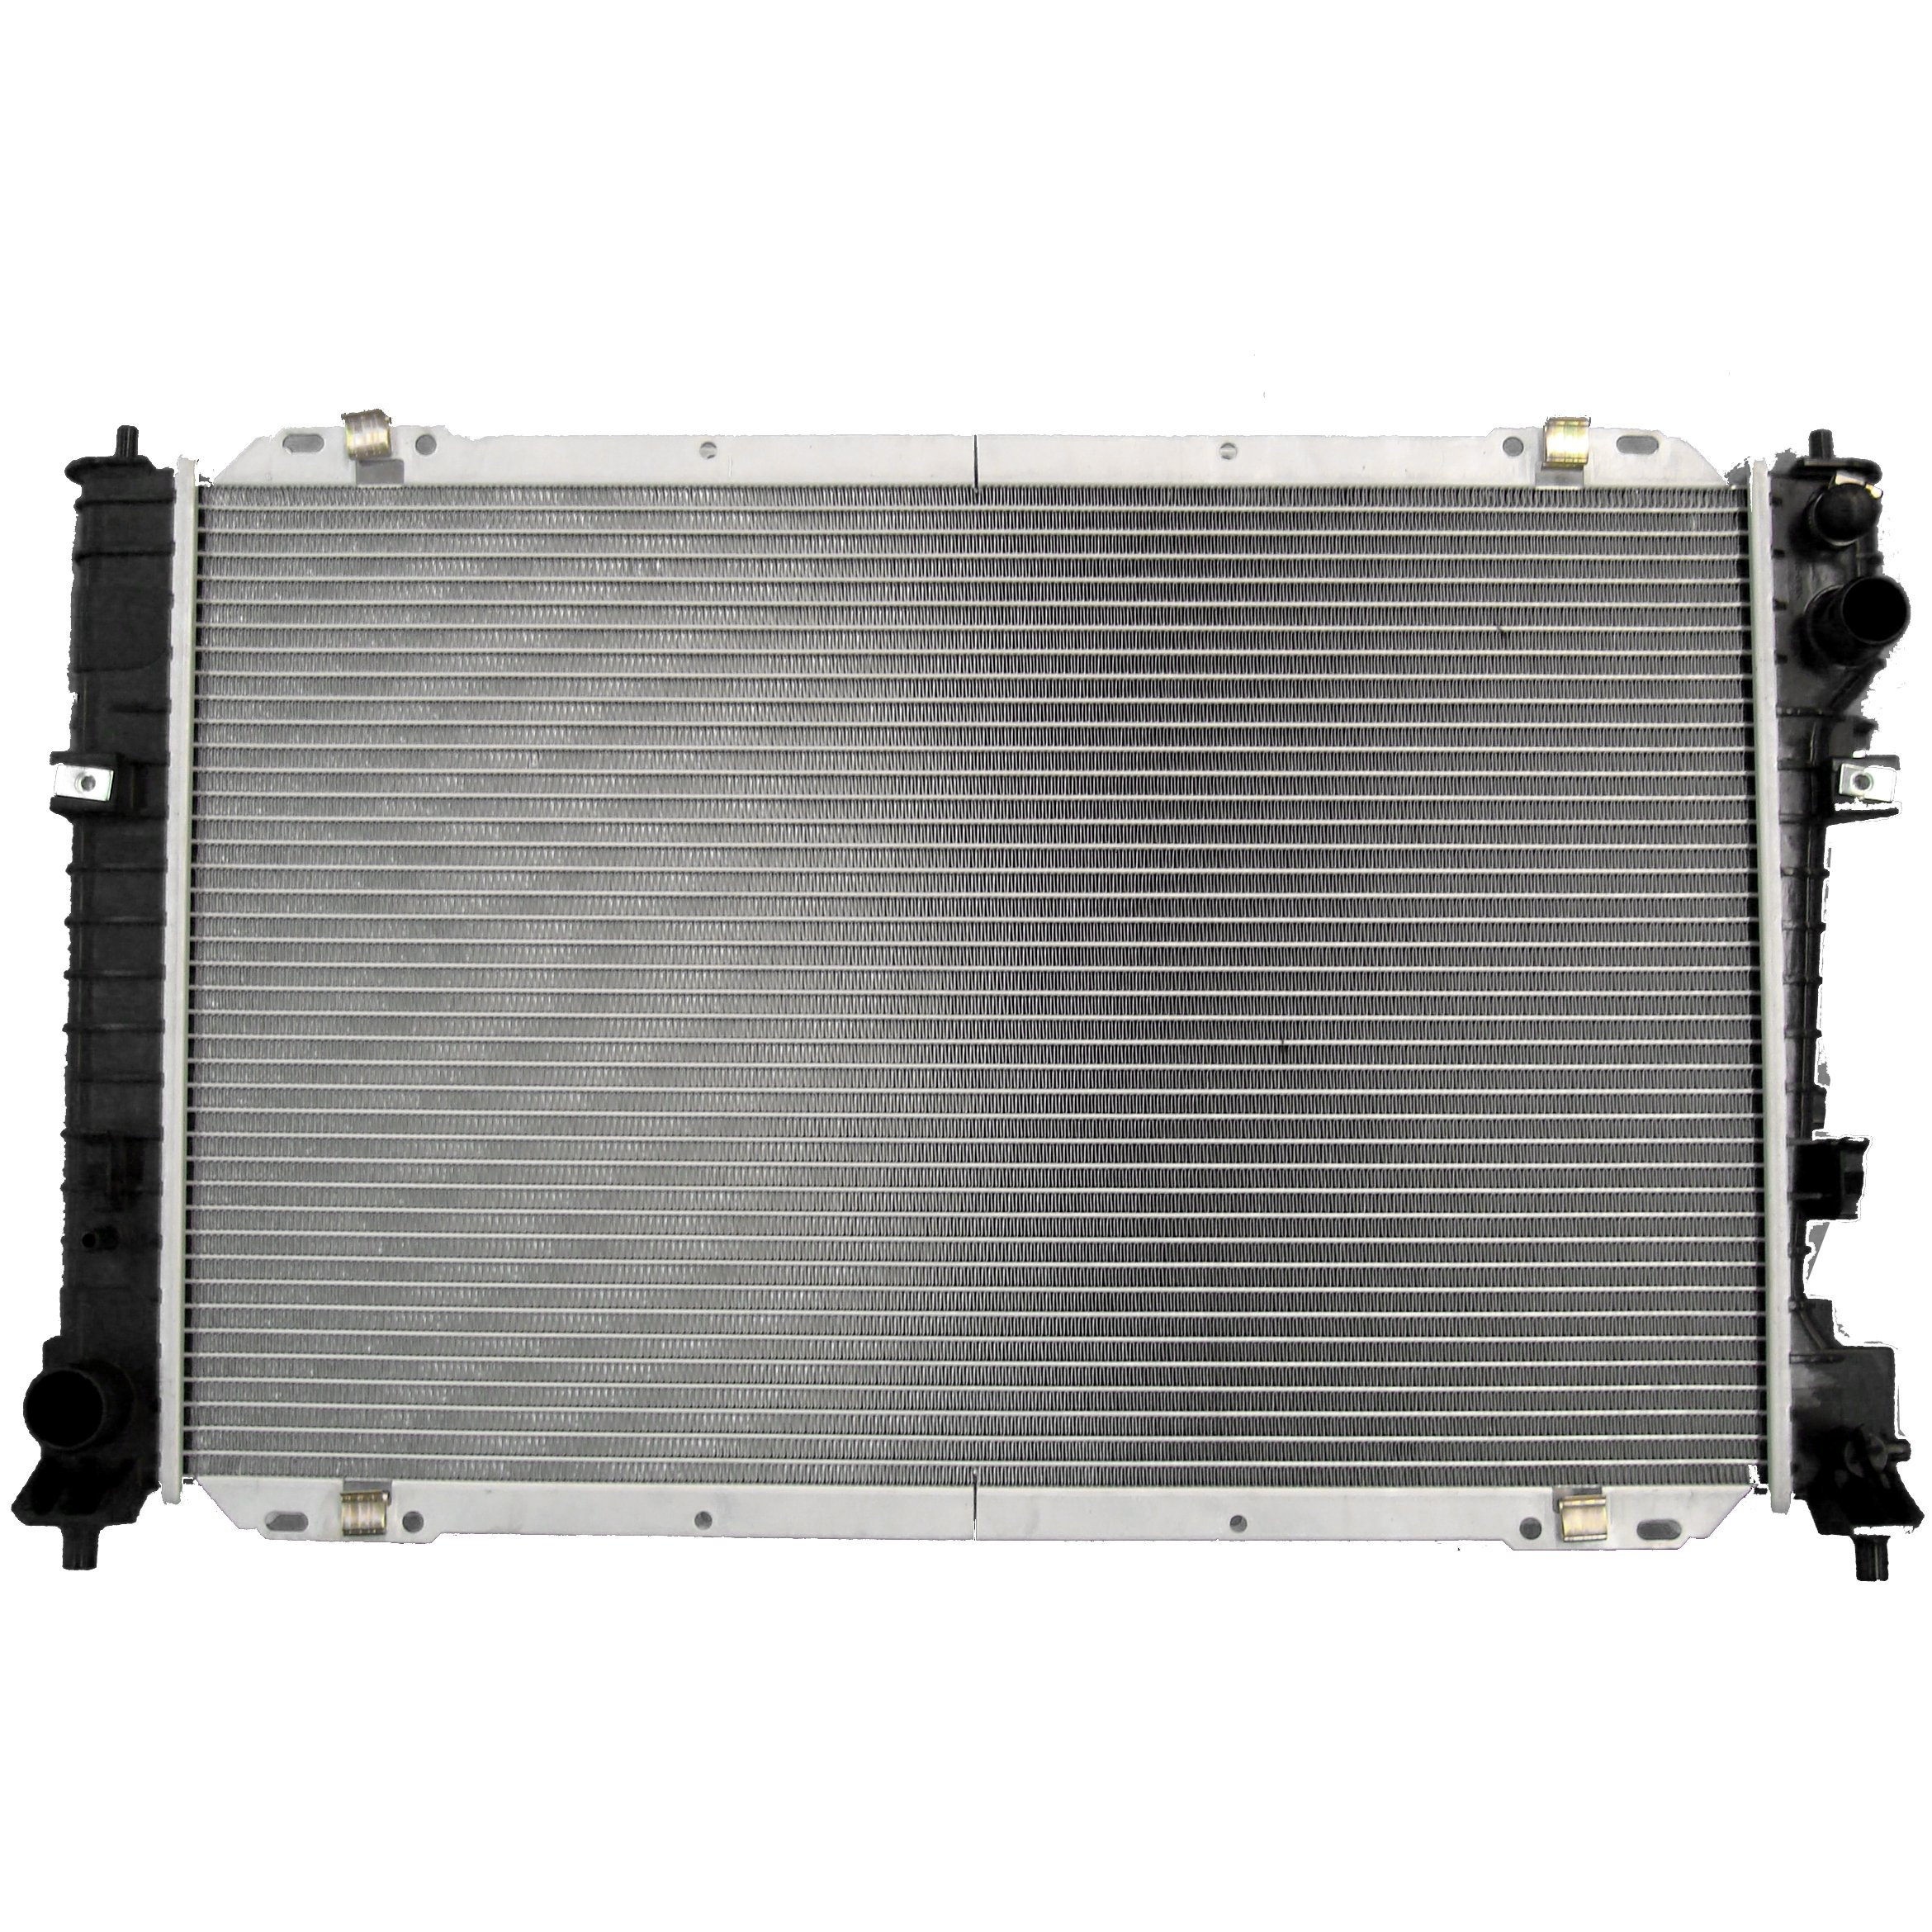 SCITOO 13052 Radiator fits 2008-2012 Ford Escape 2009-2011 Mercury Mariner Sport Utility 3.0L